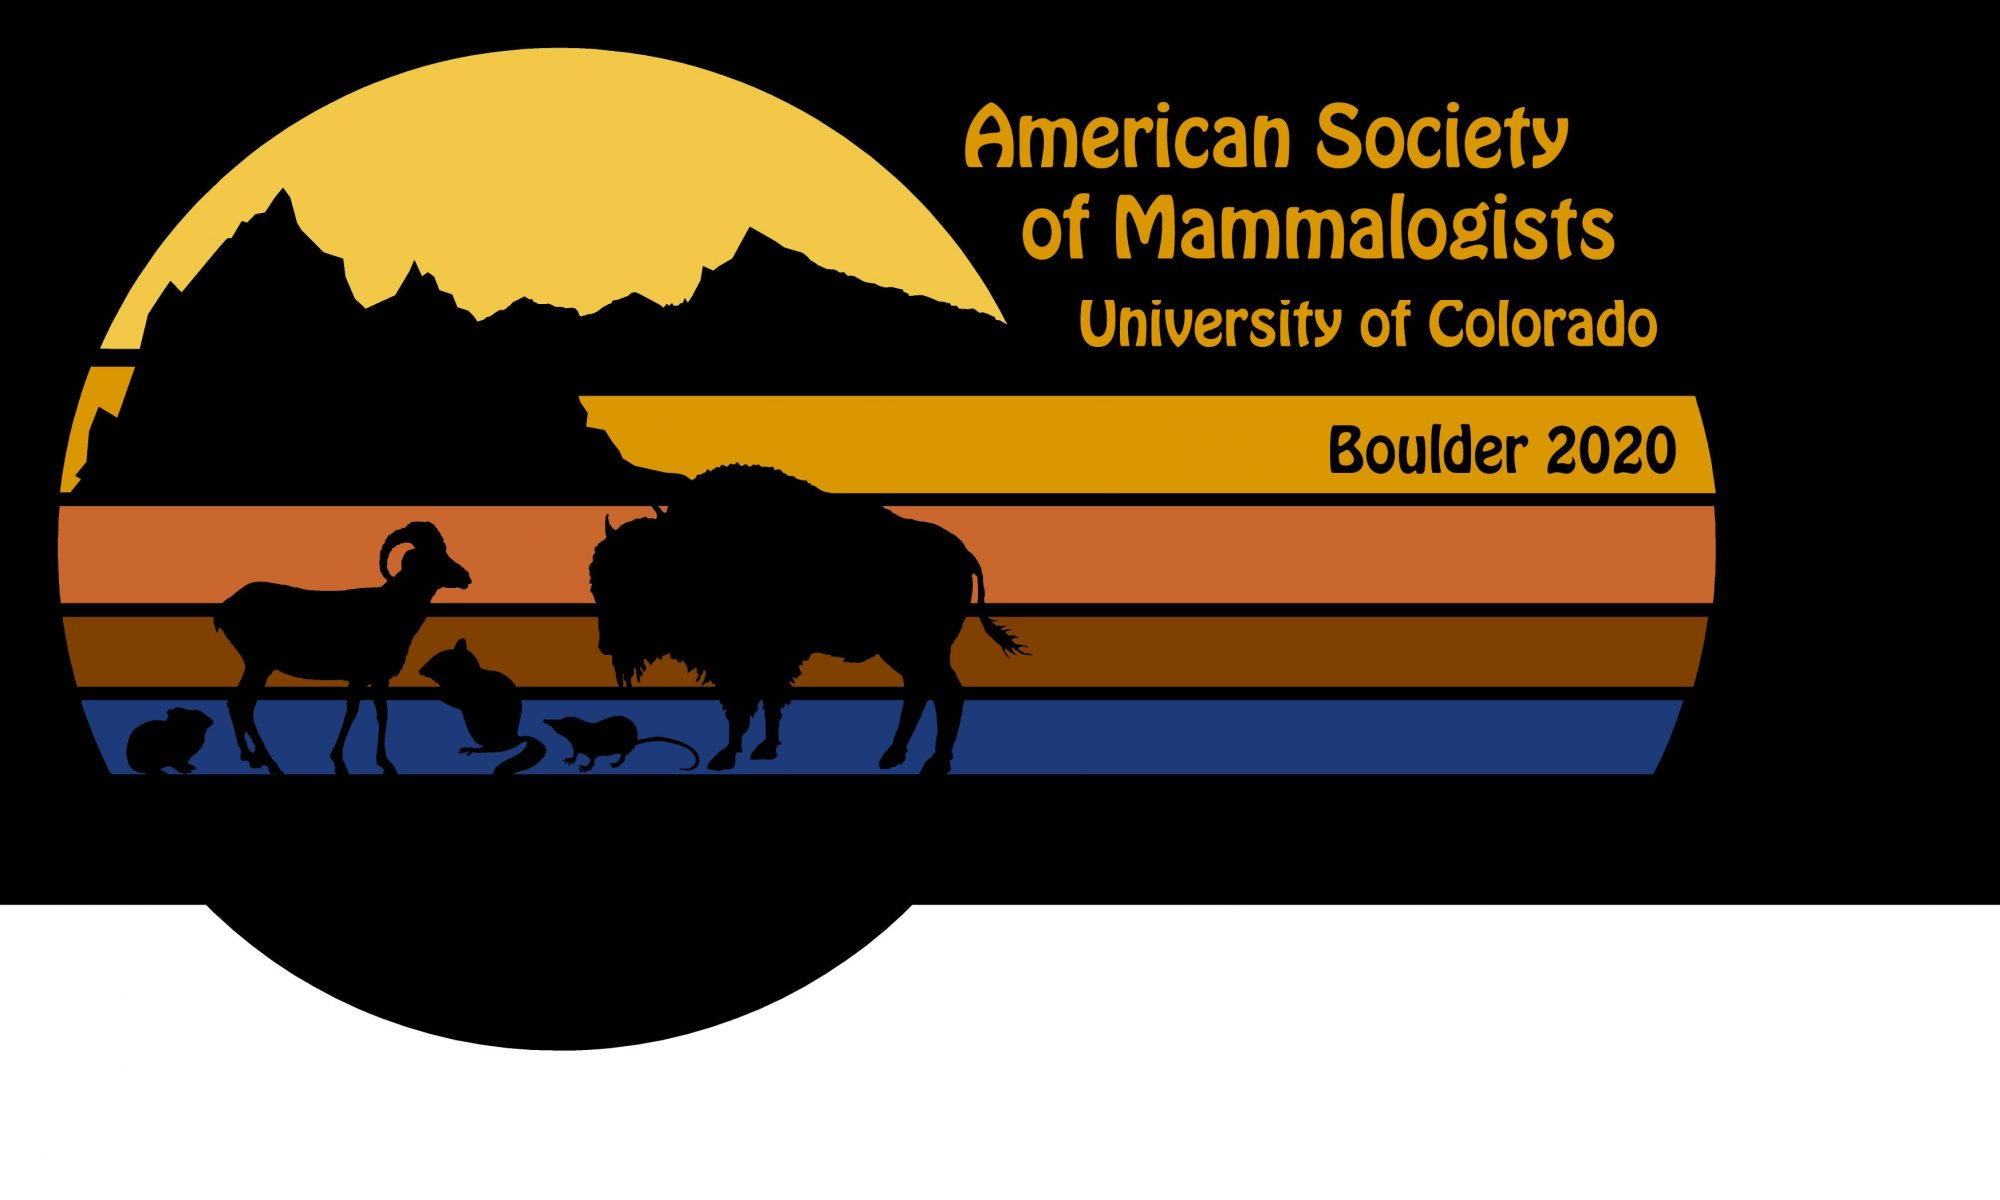 100th Annual Meeting of the American Society of Mammalogists